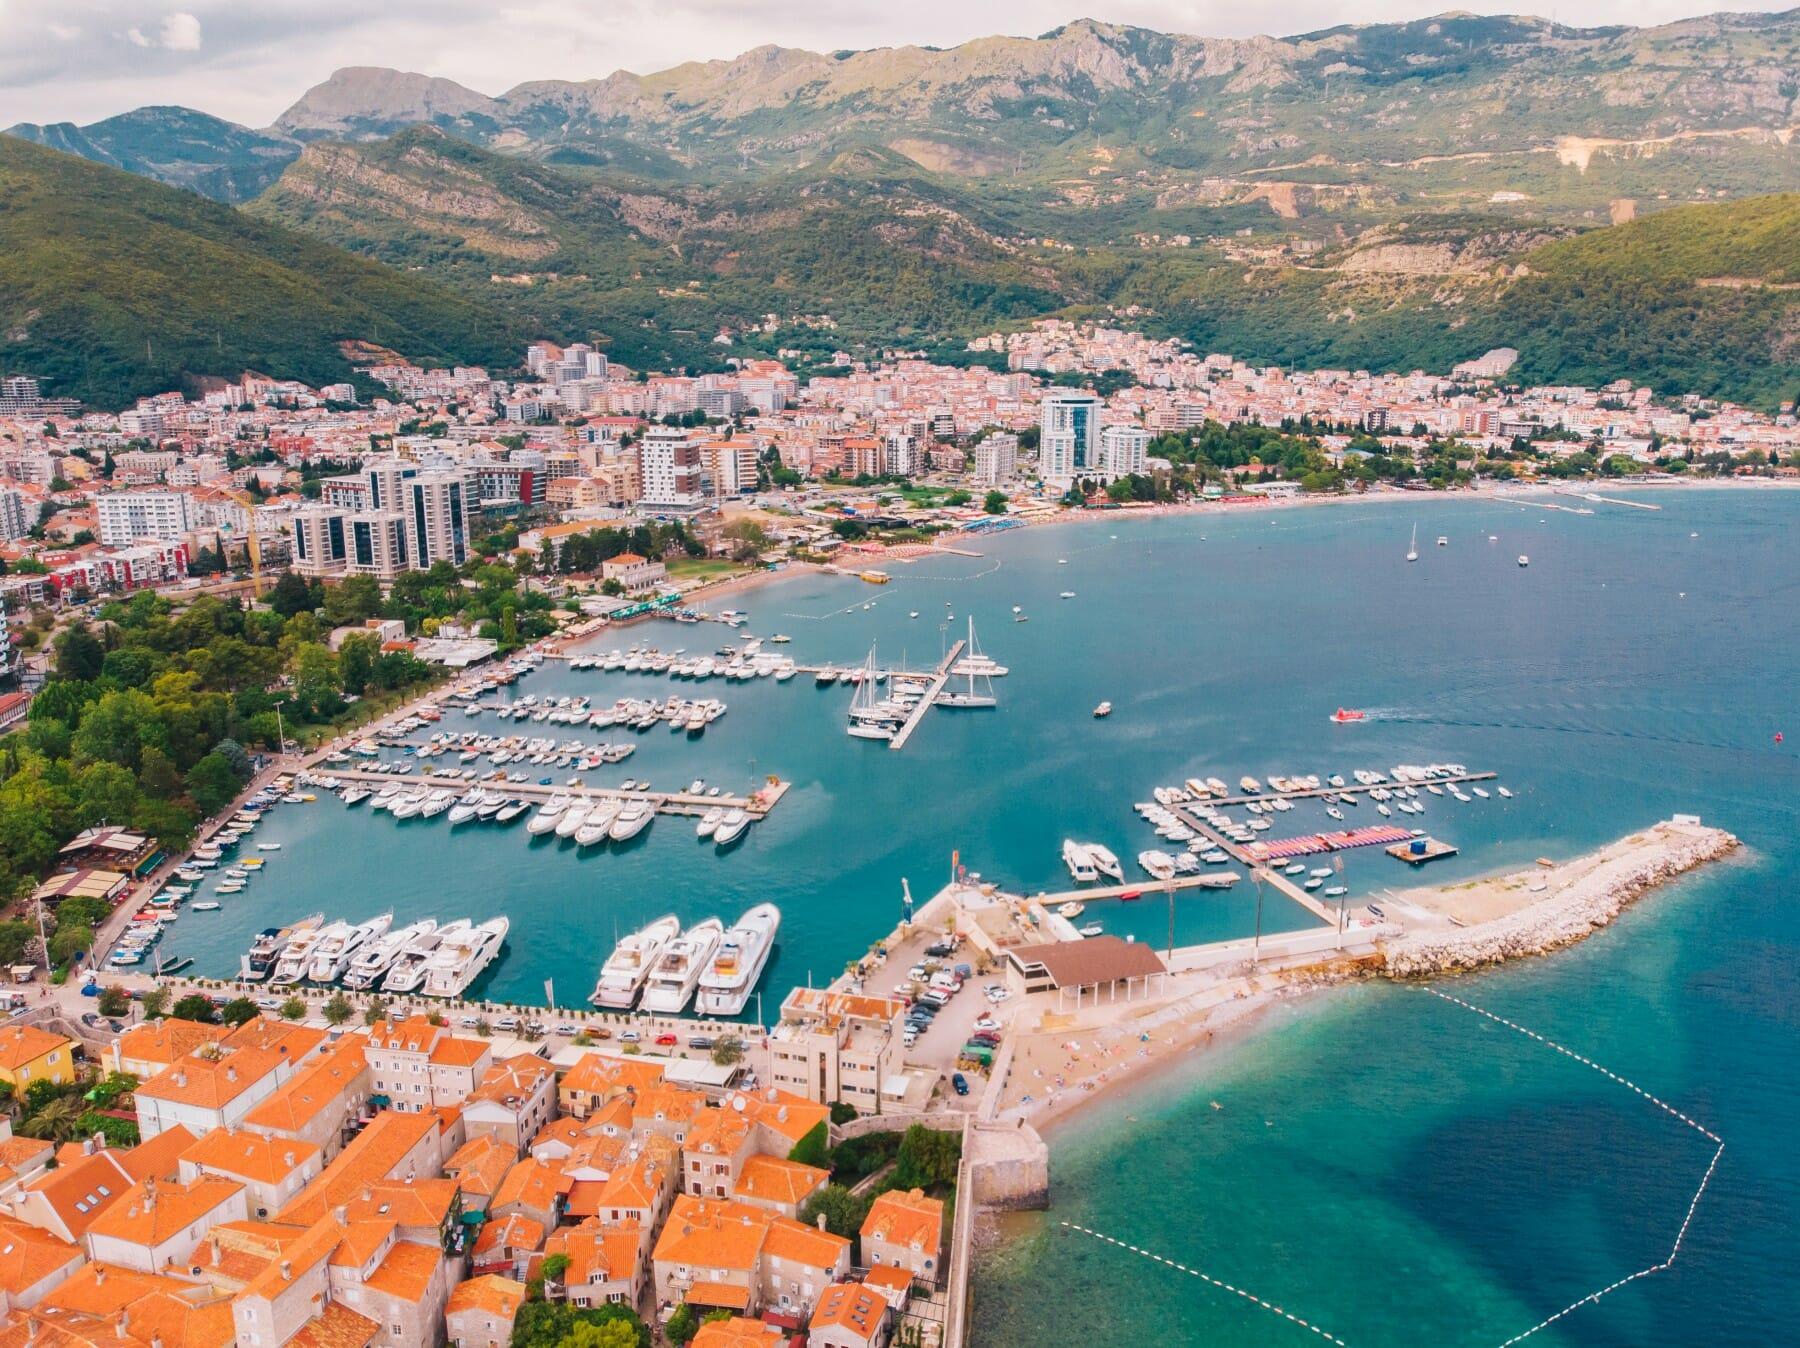 View from the air to the shore of budva in montenegro, summer day